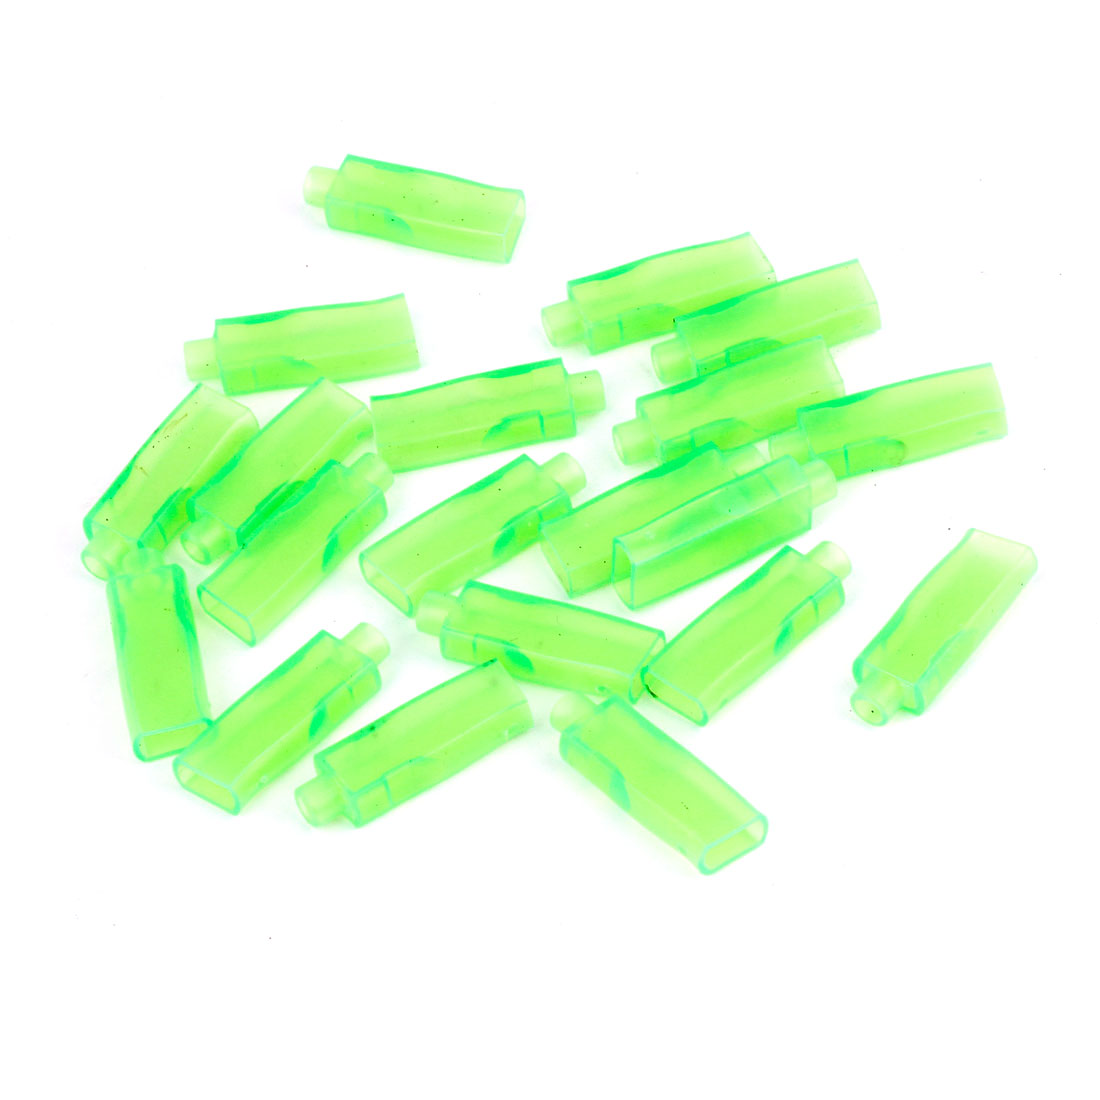 Unique Bargains 20 Pcs Green Soft PVC 6.3mm Daul Female Crimp Terminal Insulated Sleeves